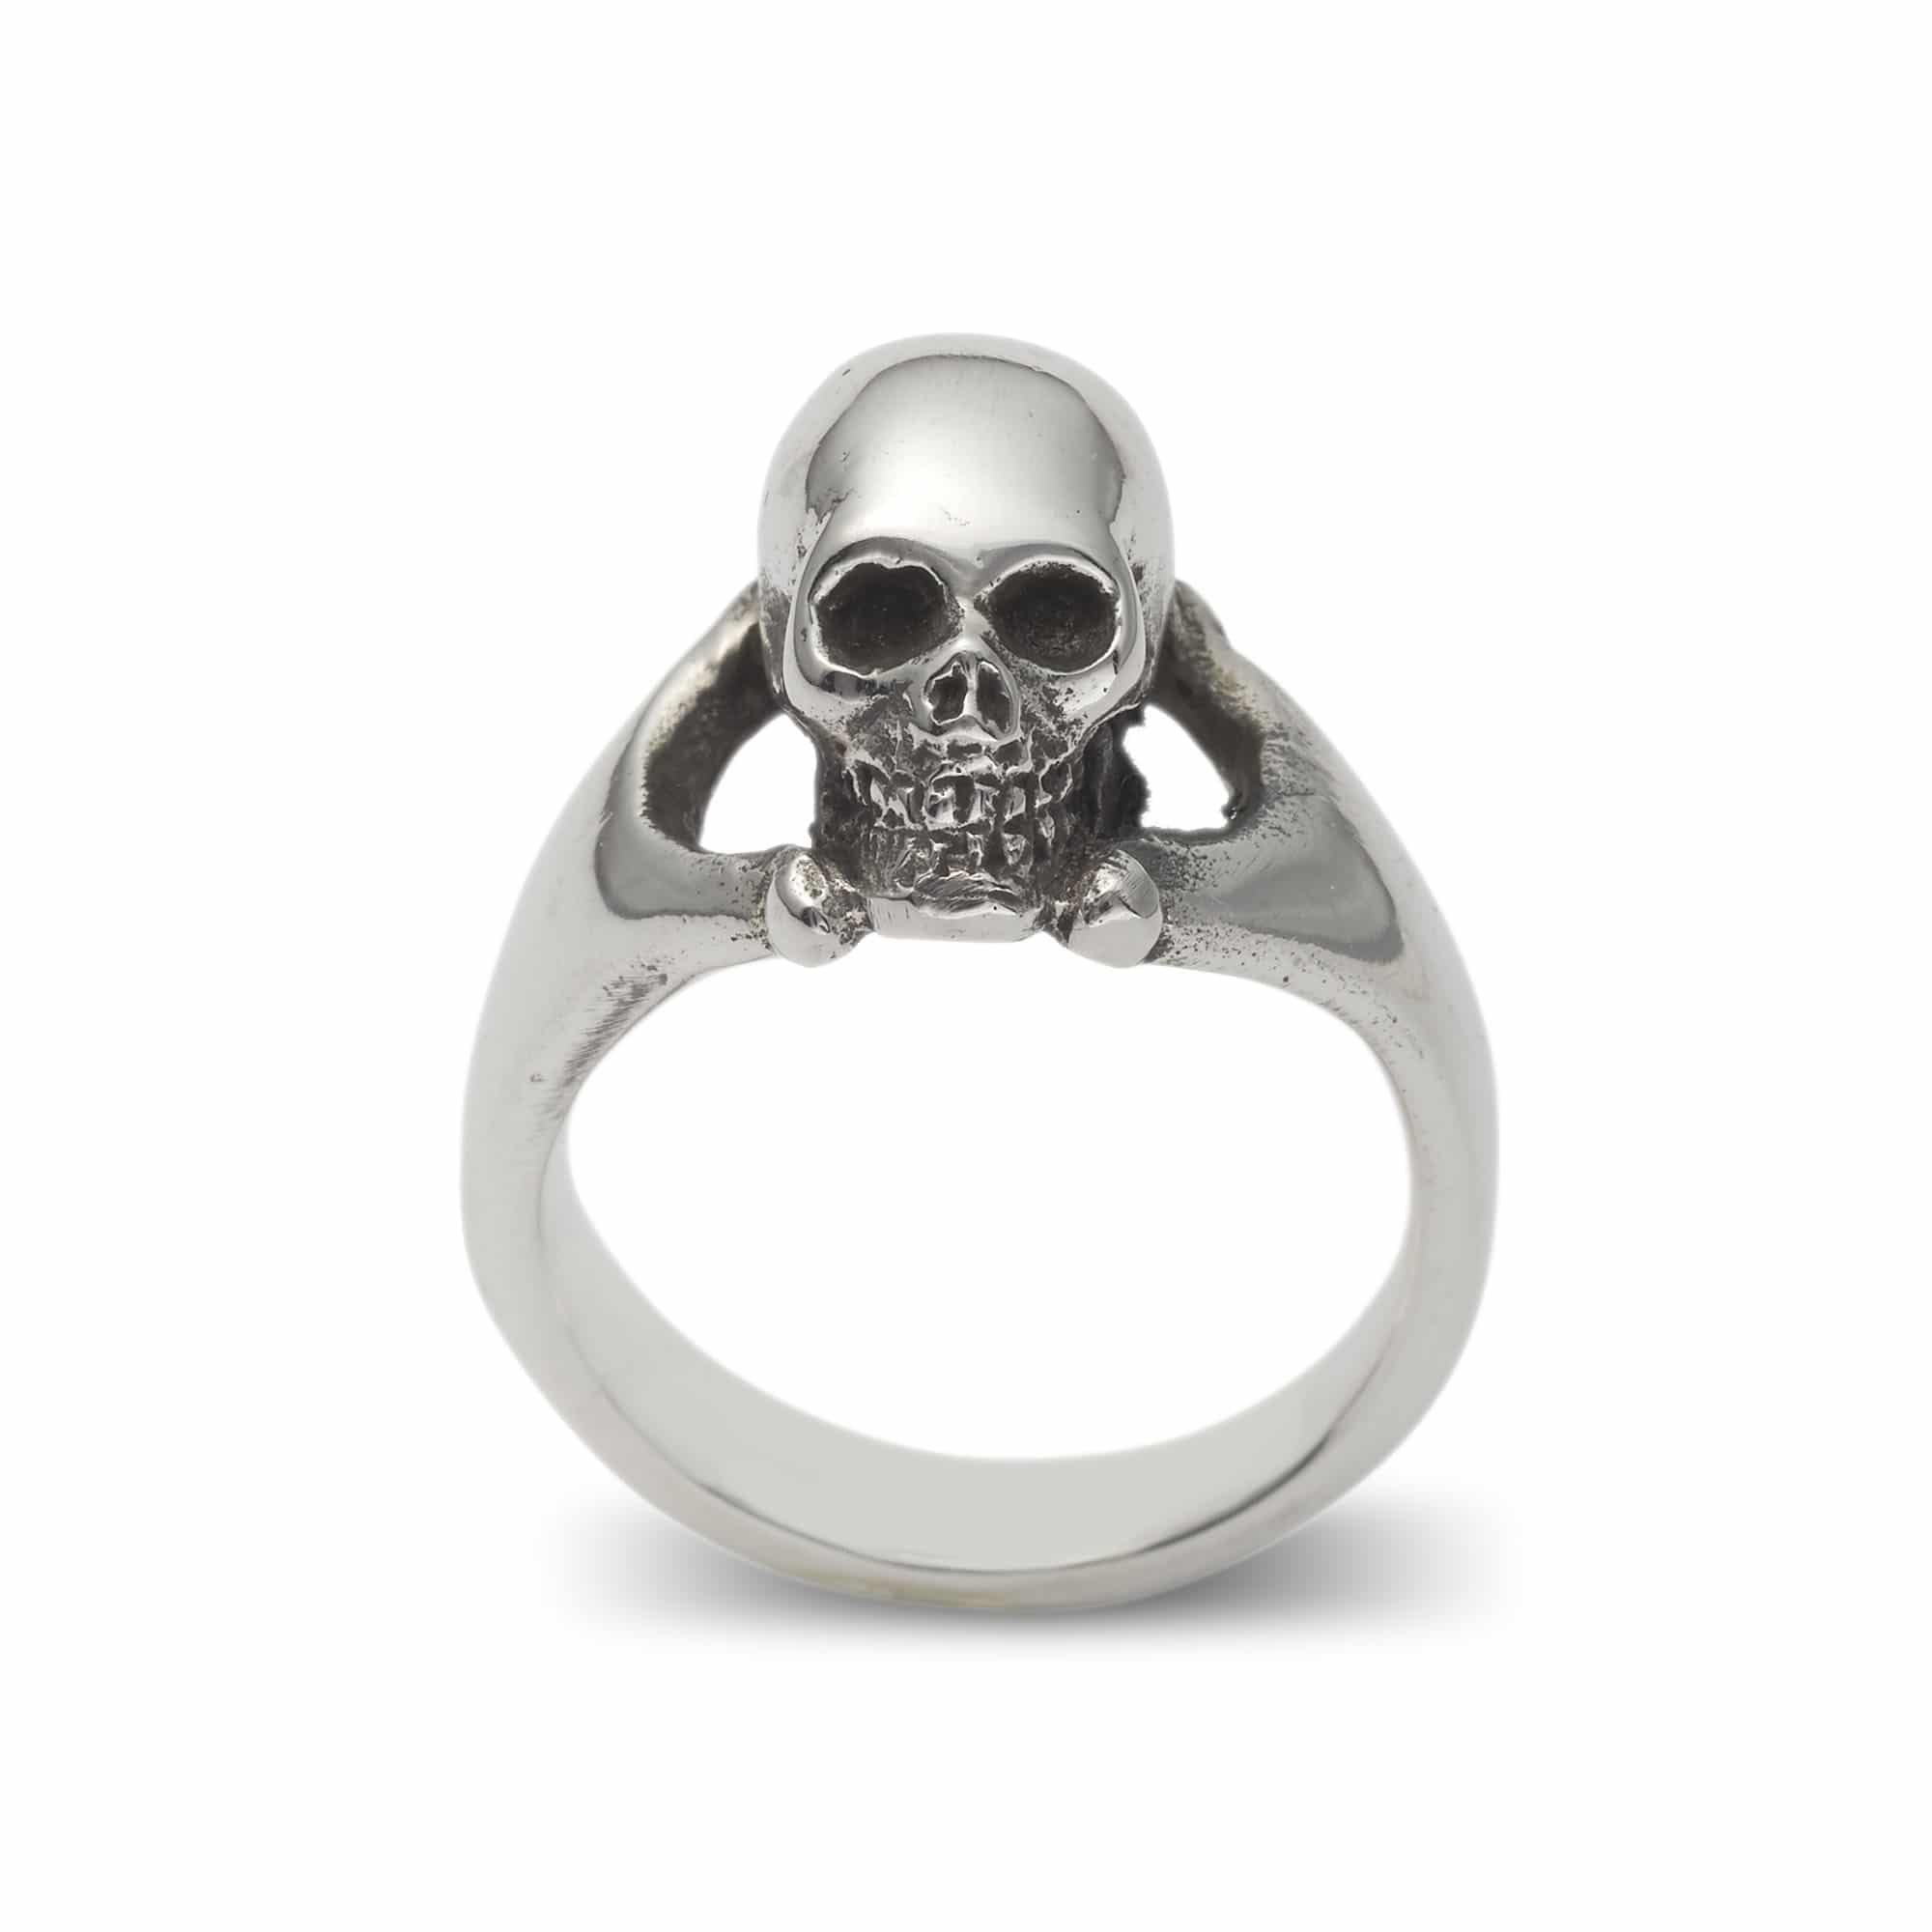 3d Skull Ring The Great Frog